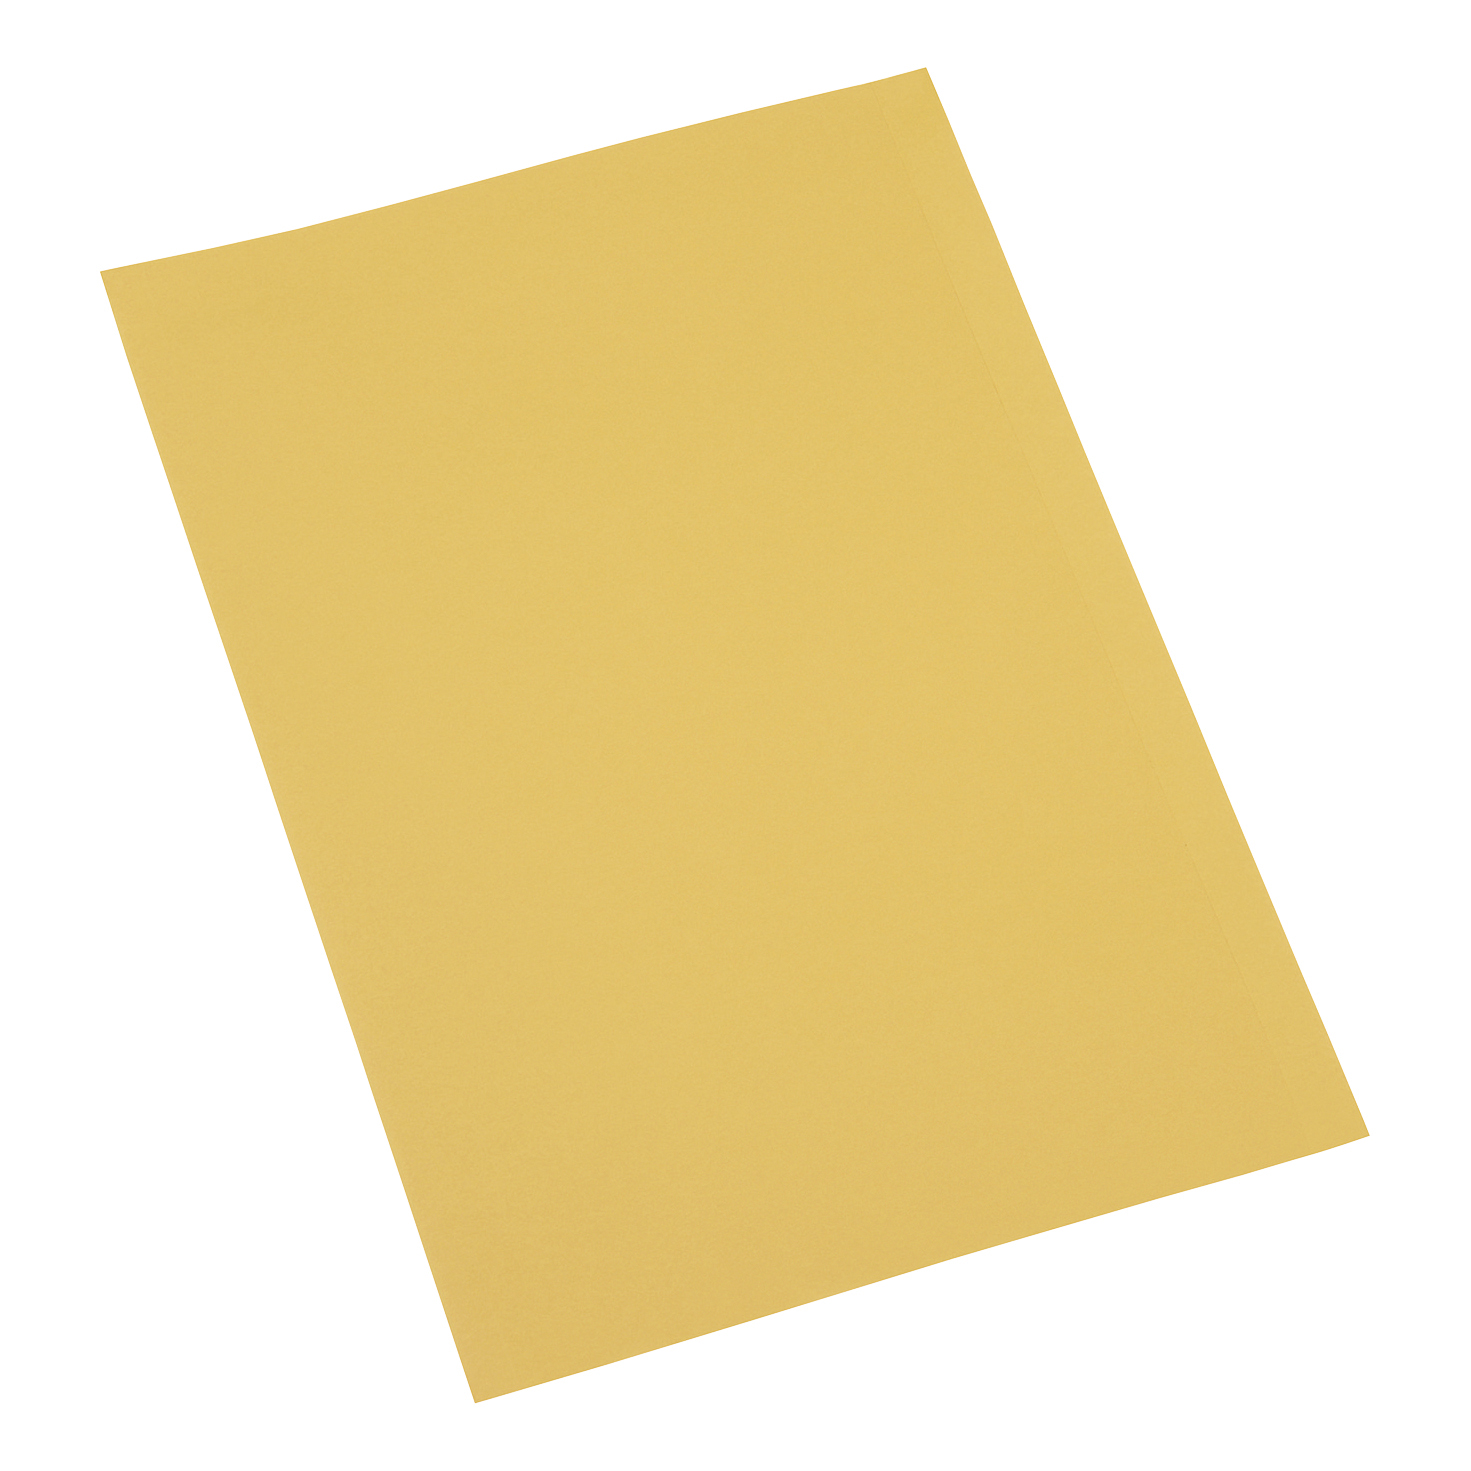 Square Cut Folders 5 Star Office Square Cut Folder Recycled 250gsm Foolscap Yellow Pack 100